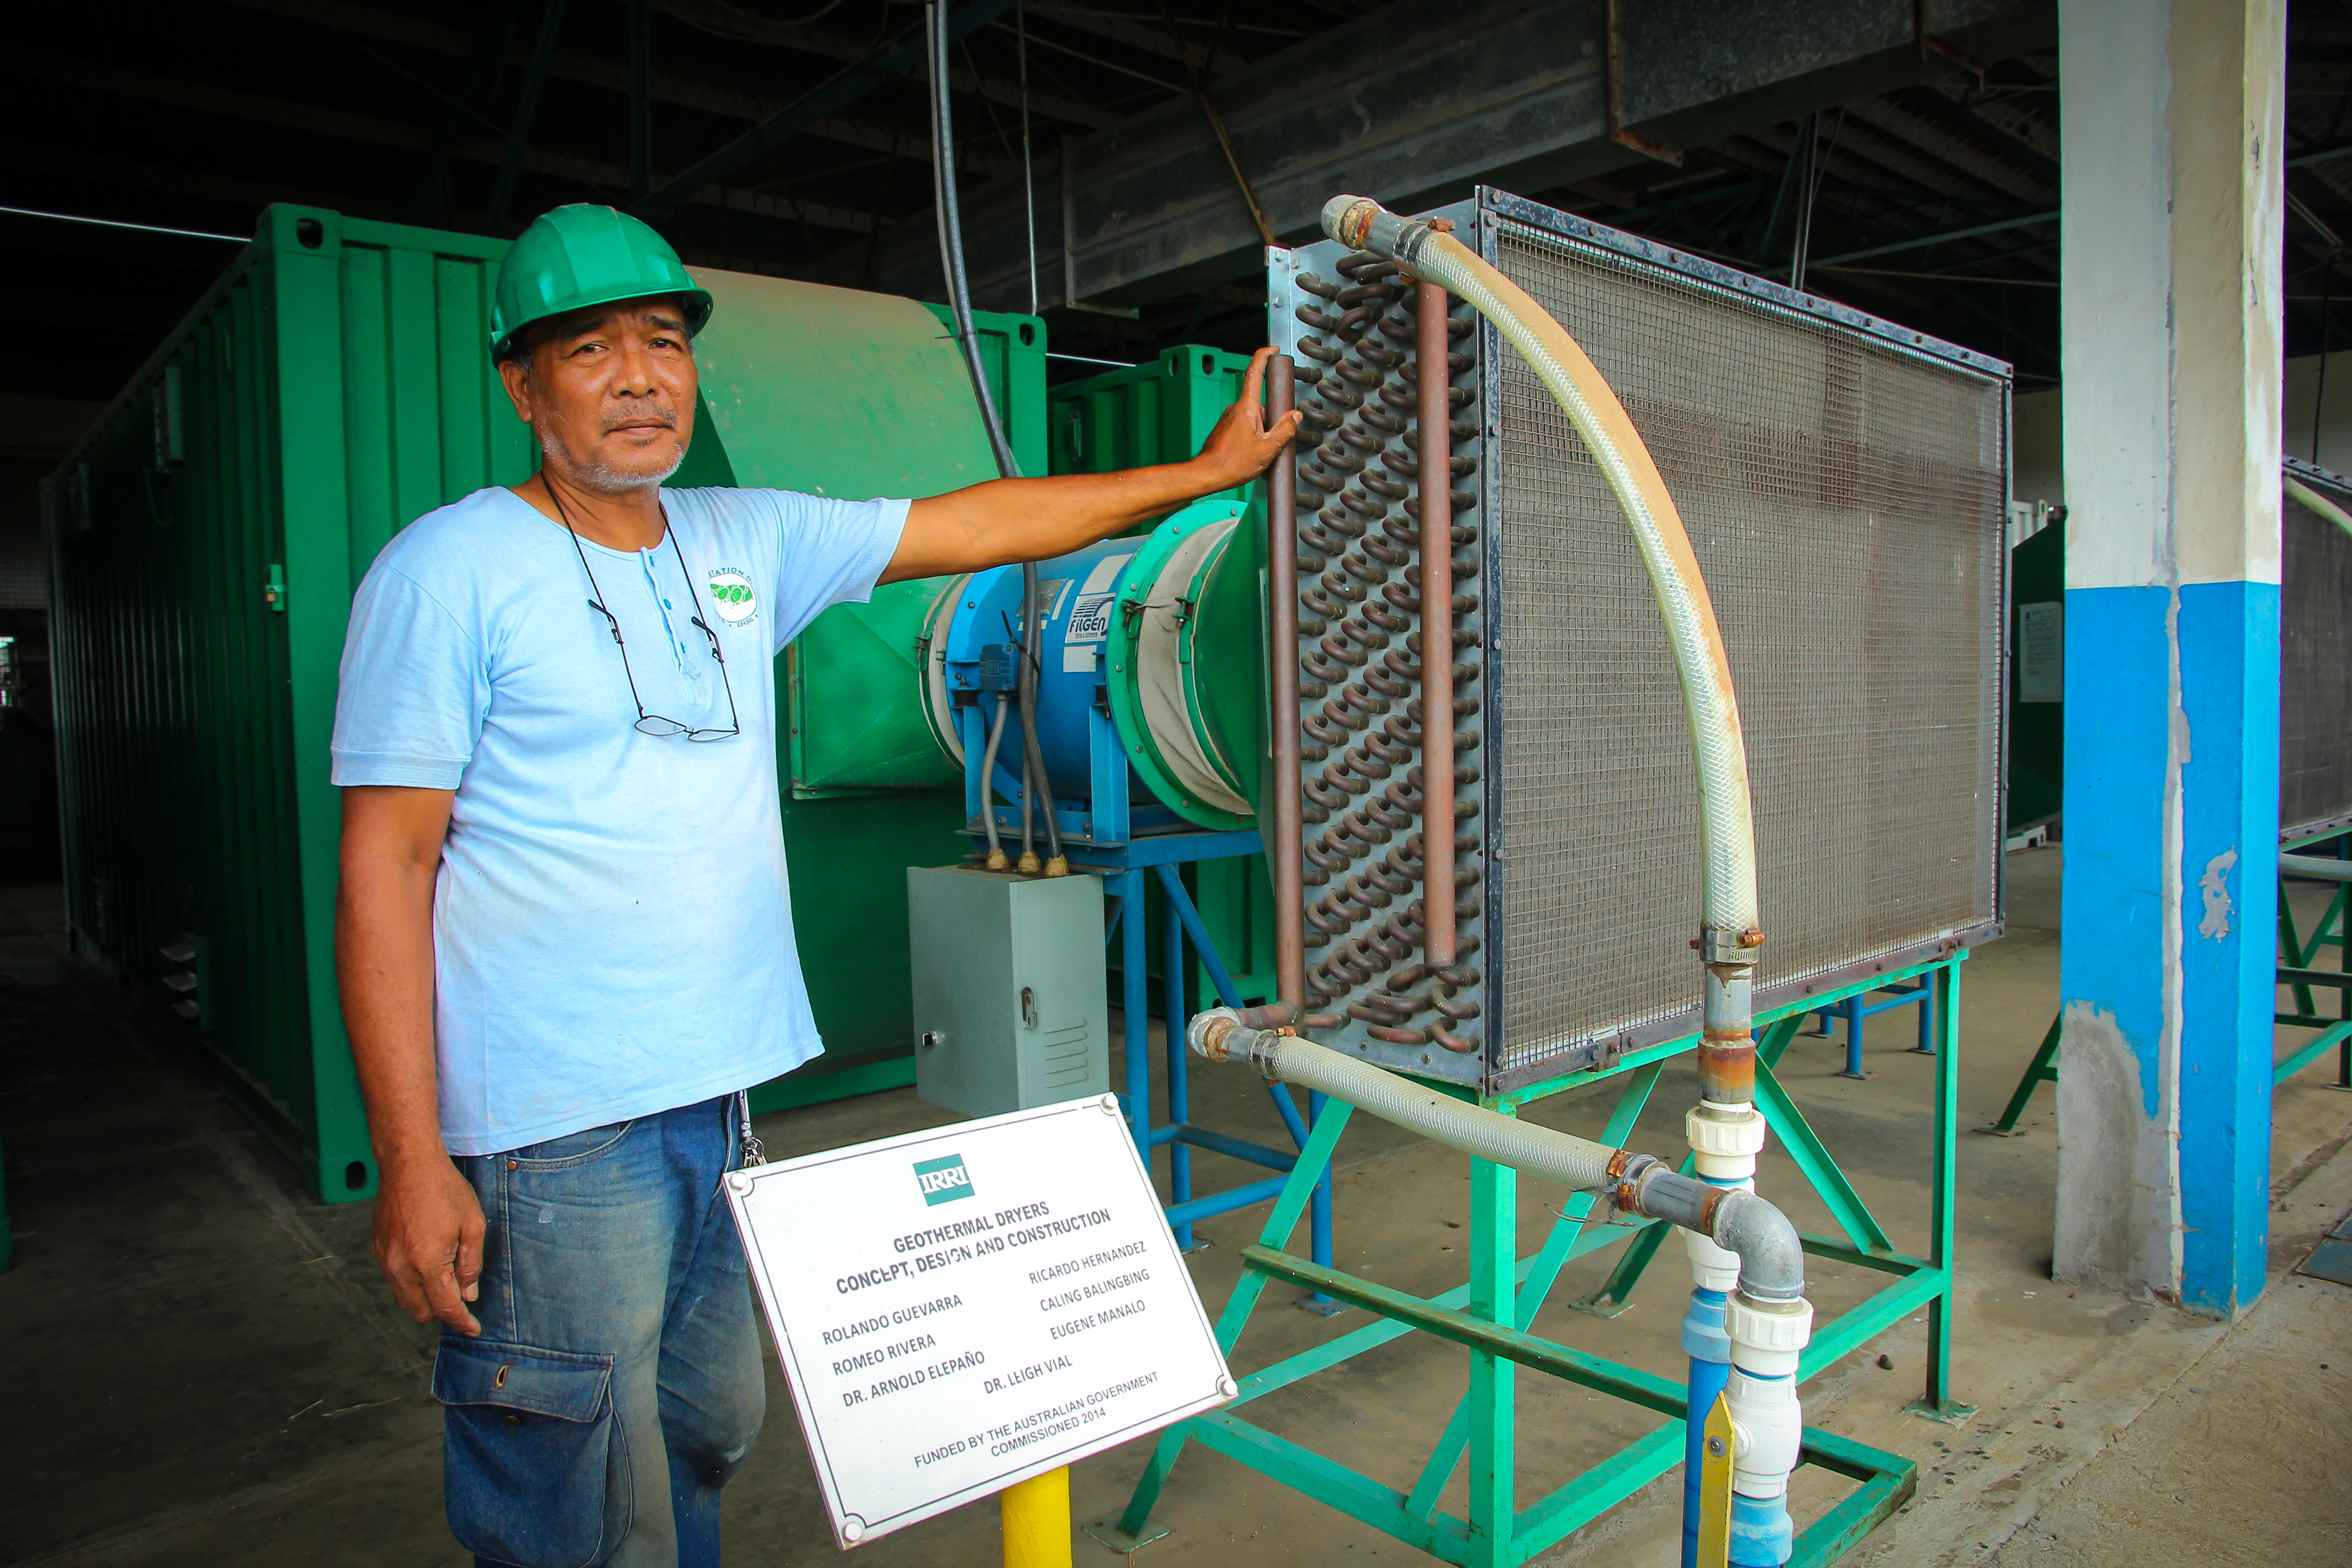 Mr. Guevarra, a mechanic and fabricator working at the Zeigler Experiment Station, was part of the team that conceptualized and designed the geothermal dryer. (Photo I. Serrano, IRRI)